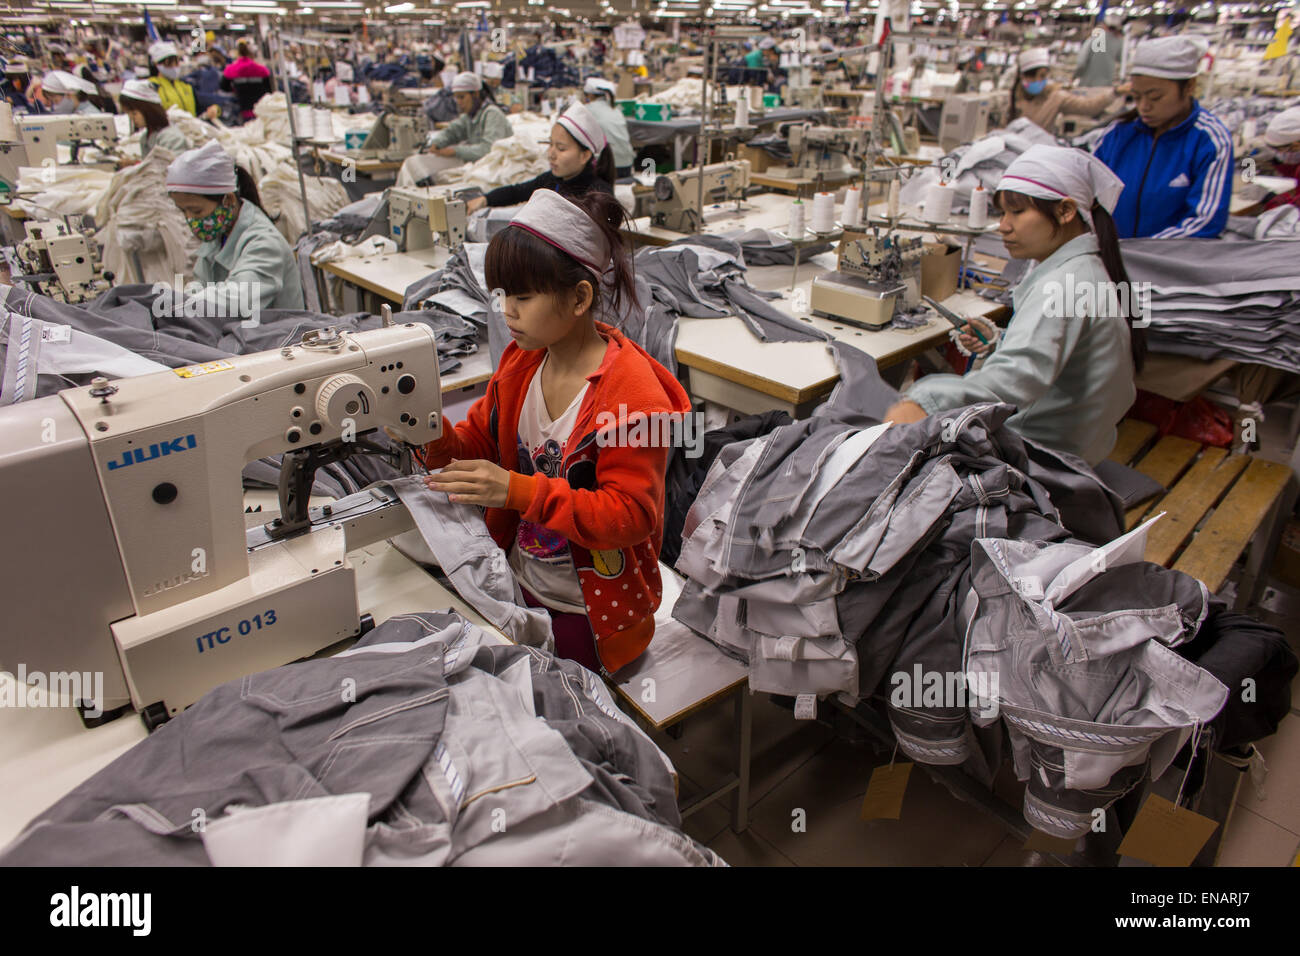 working conditions in a clothing factory in vietnam stock photo 81987311 alamy. Black Bedroom Furniture Sets. Home Design Ideas